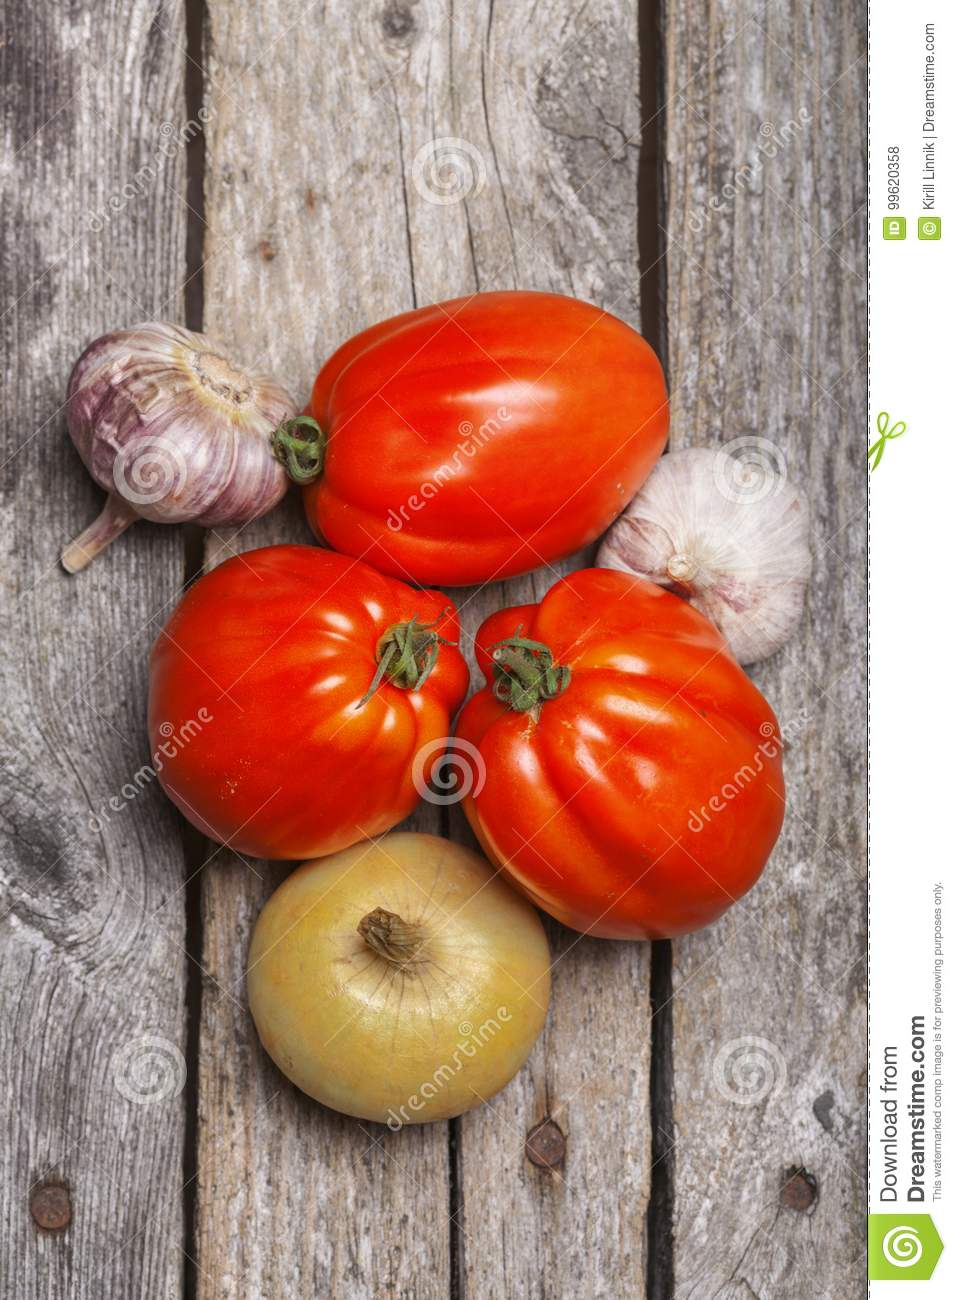 Download Tomatoes, Onion And Garlic On The Table Stock Photo - Image of kitchen, onion: 99620358